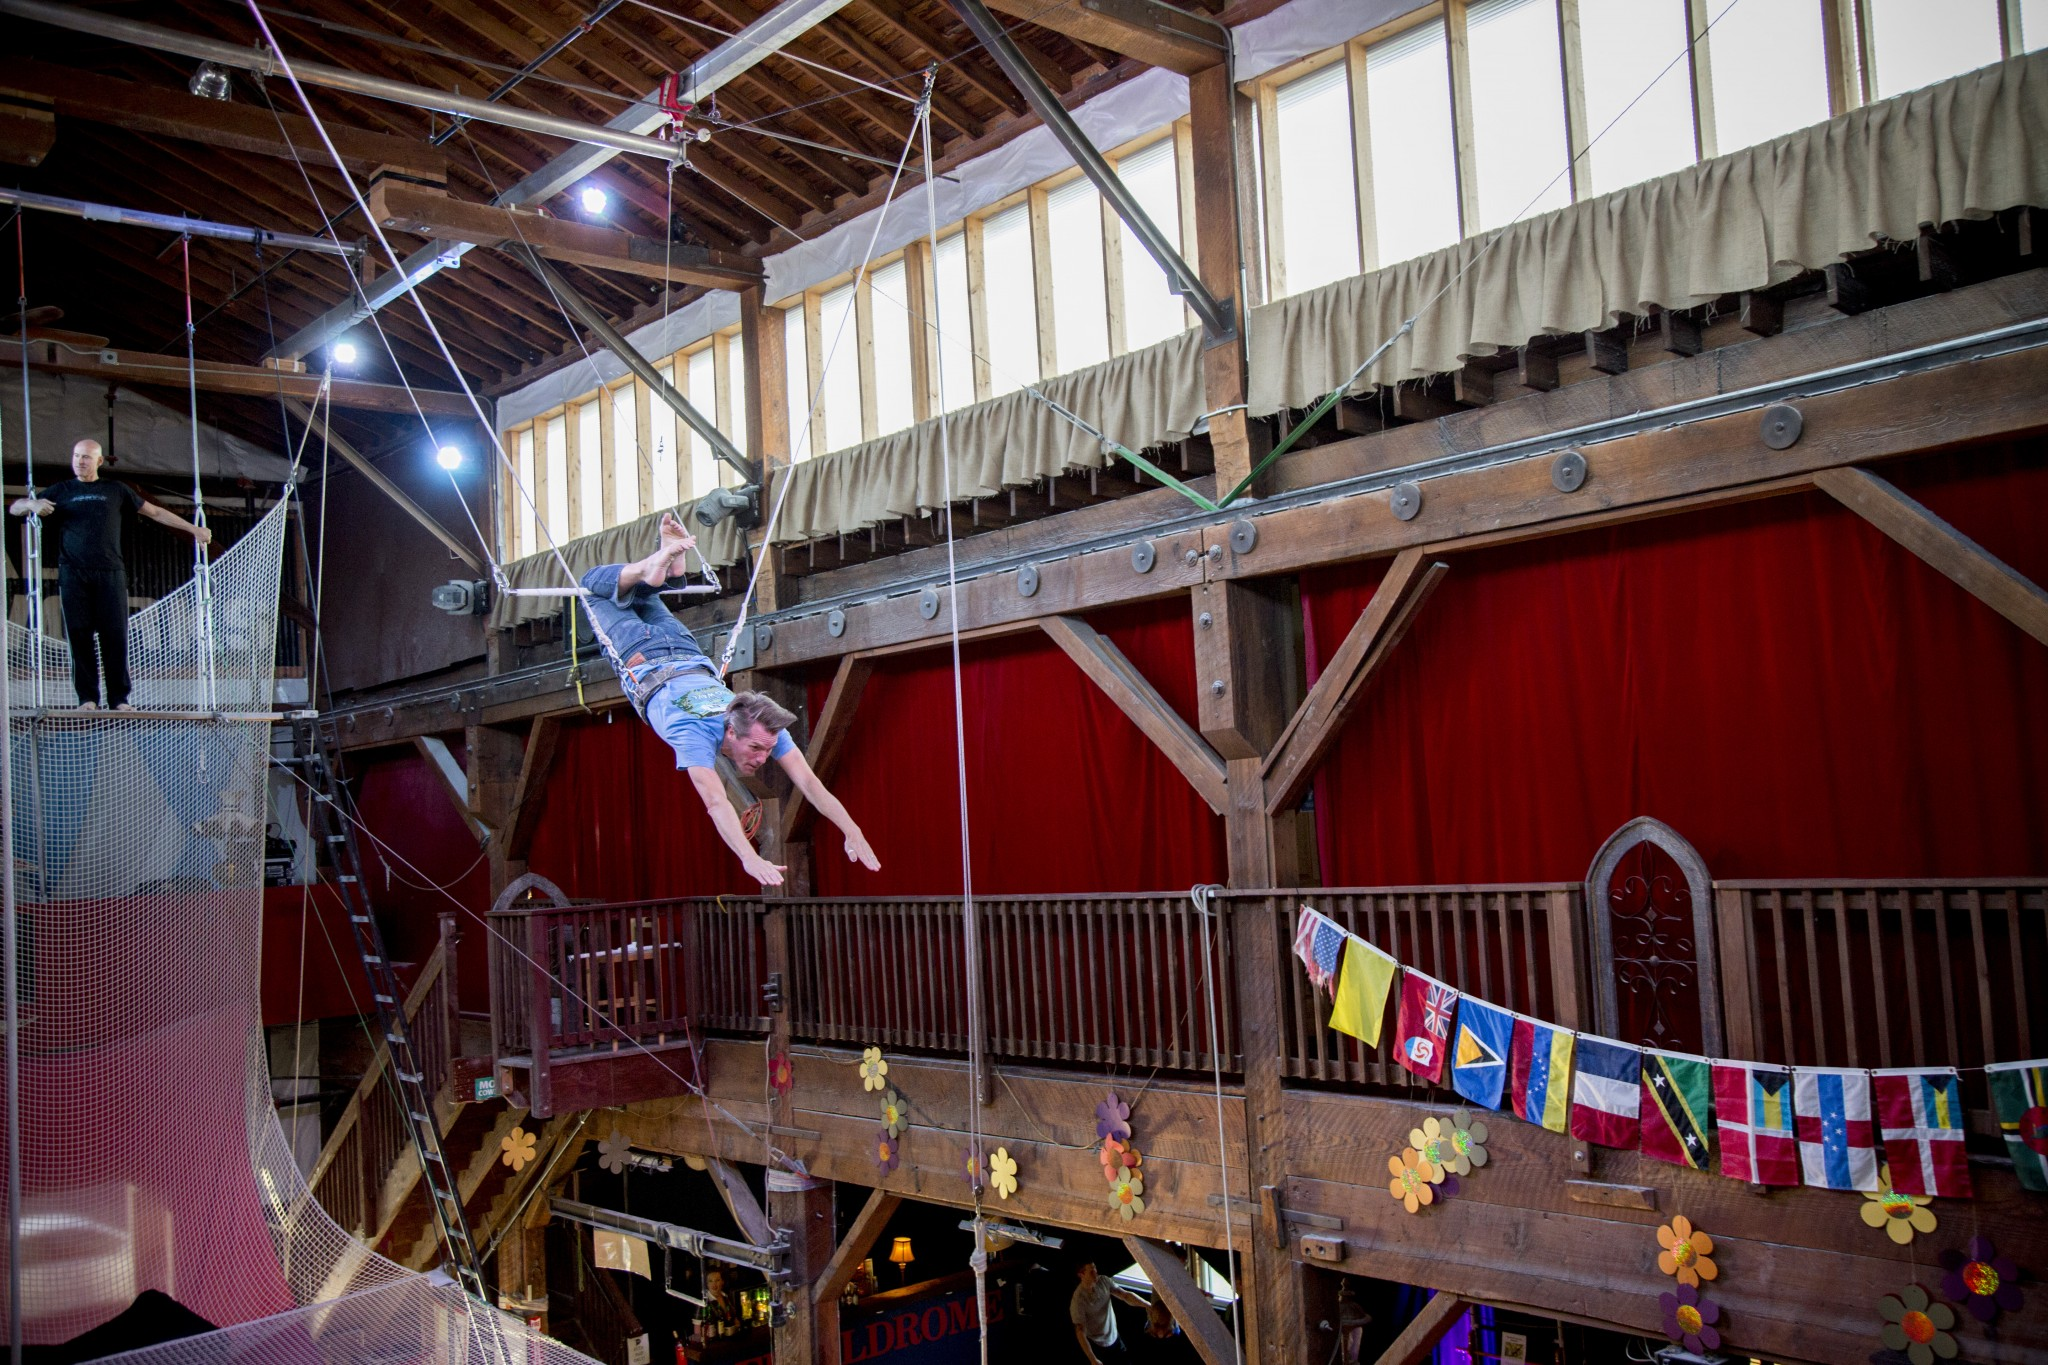 Swinging Flying Trapeze Class During an Event